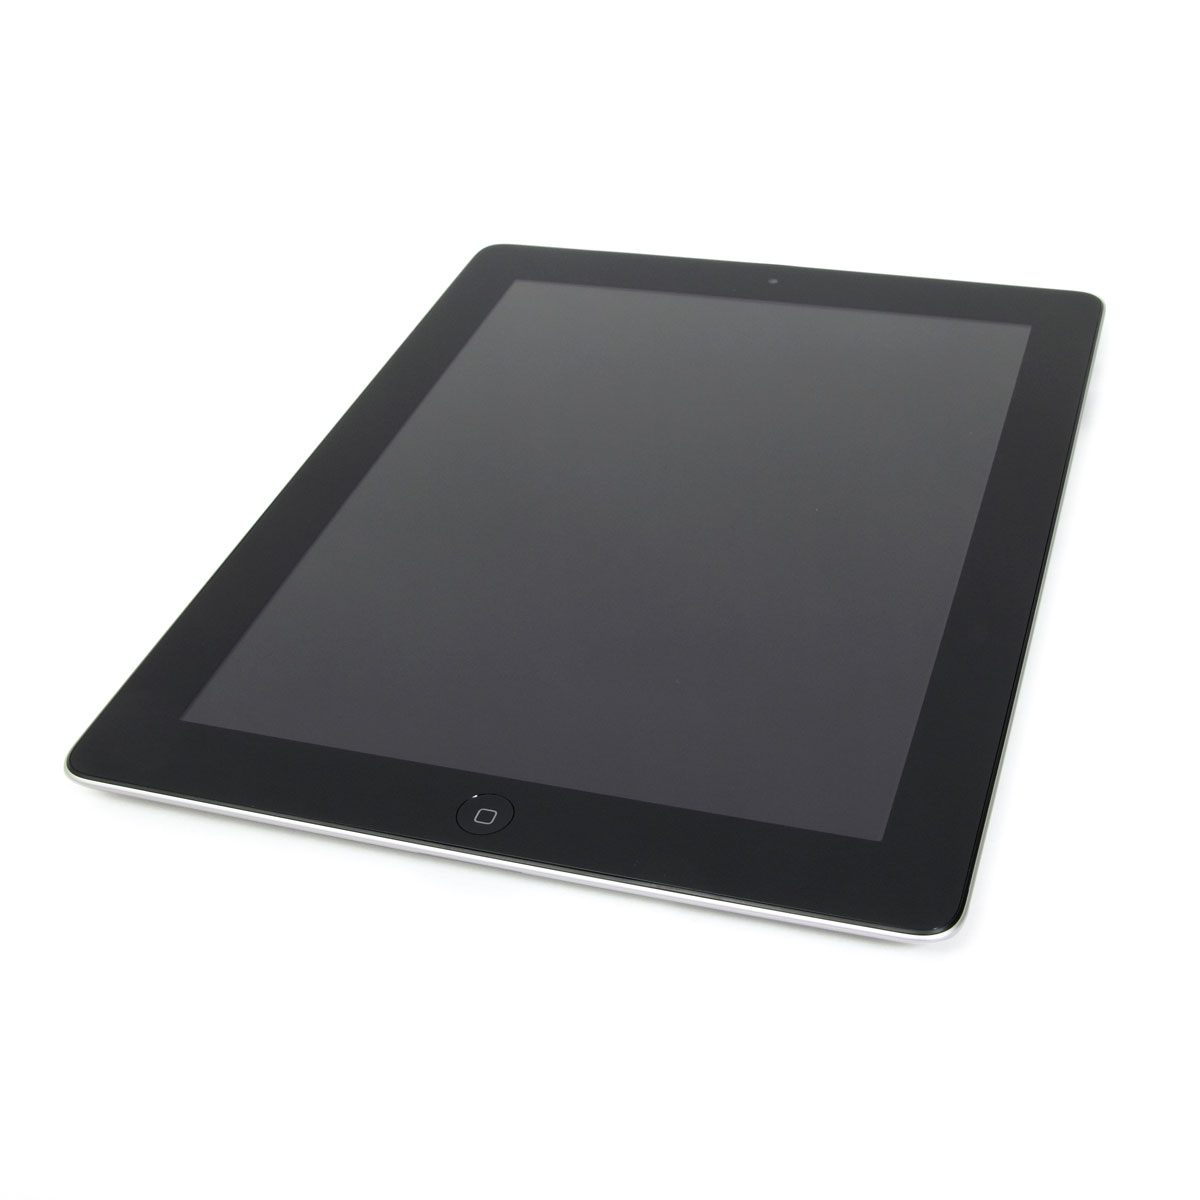 apple nouvel ipad wi fi 4g 64 go noir tablette tactile apple sur. Black Bedroom Furniture Sets. Home Design Ideas